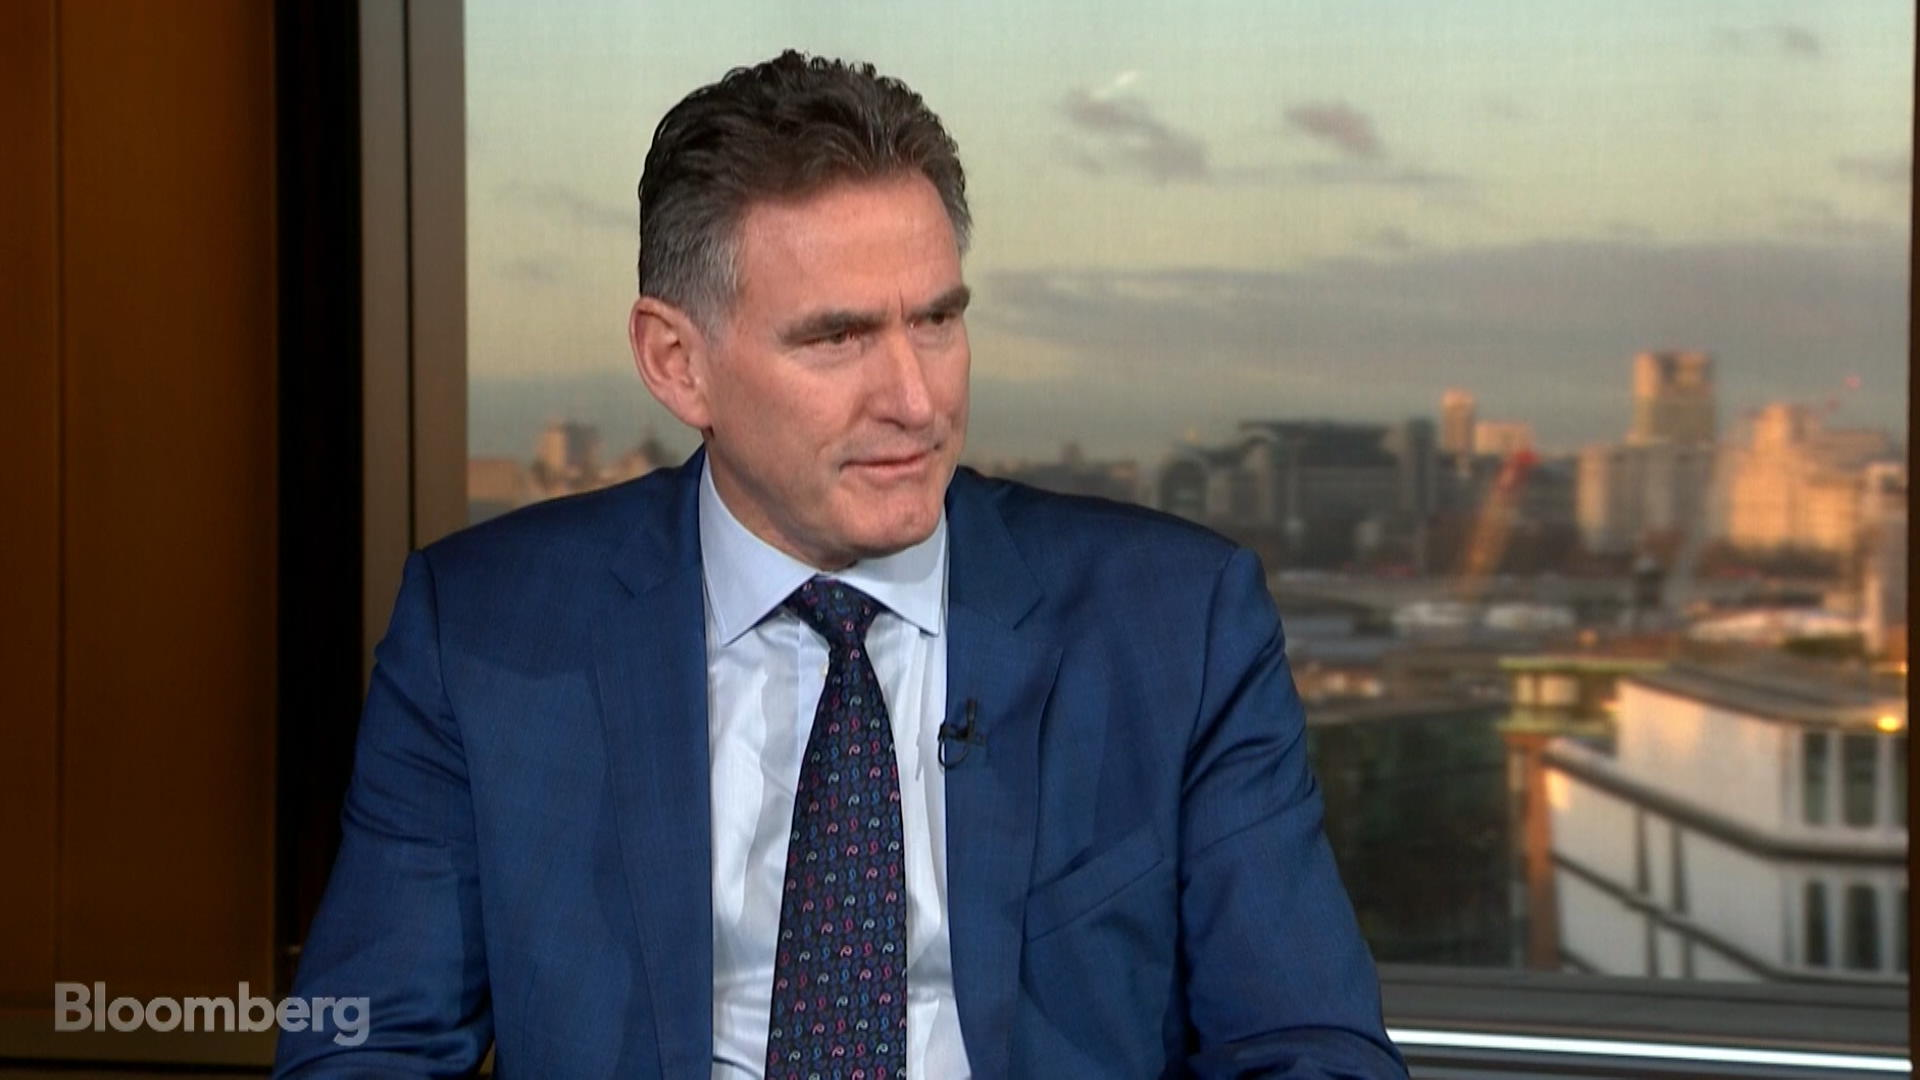 Rbs ceo ross mcewan on brexit doj mifid ii bloomberg fandeluxe Gallery